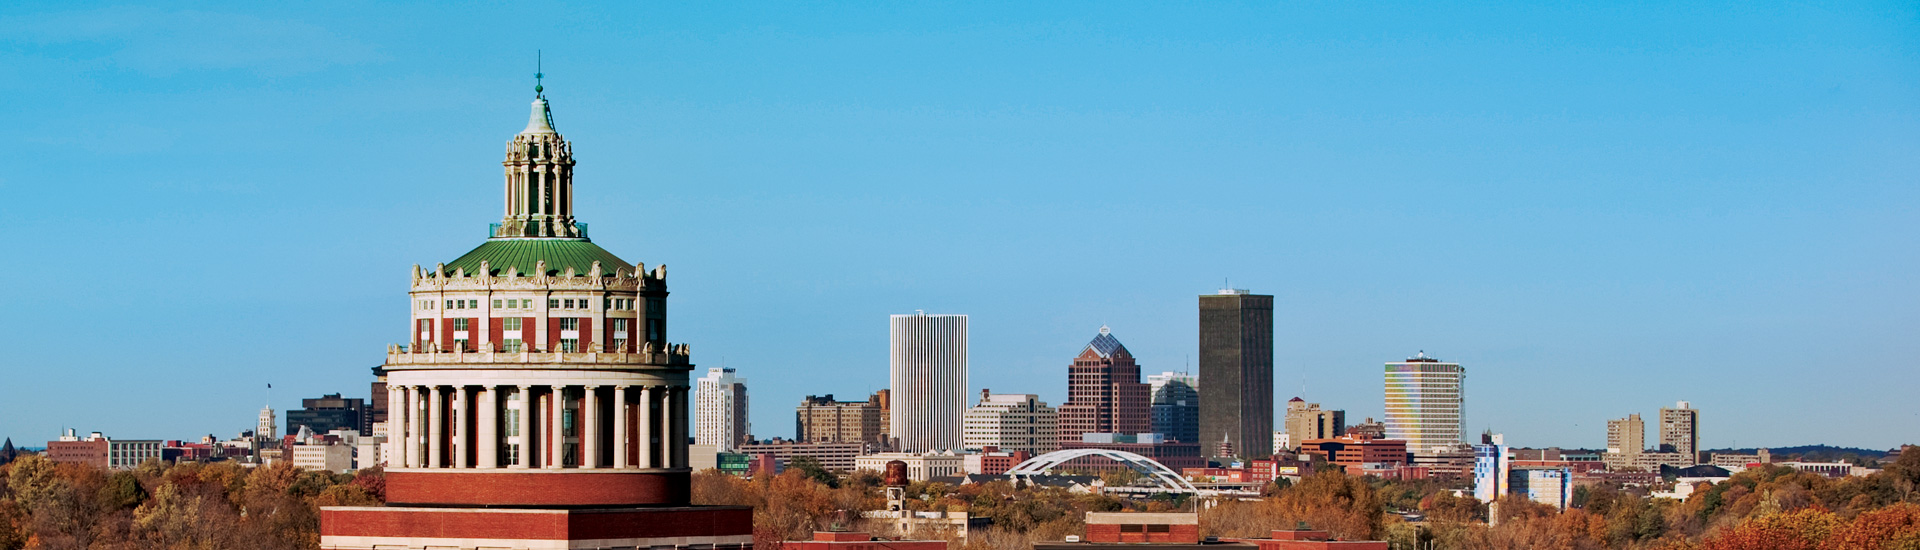 Skyline of Rush Rhees and downtown